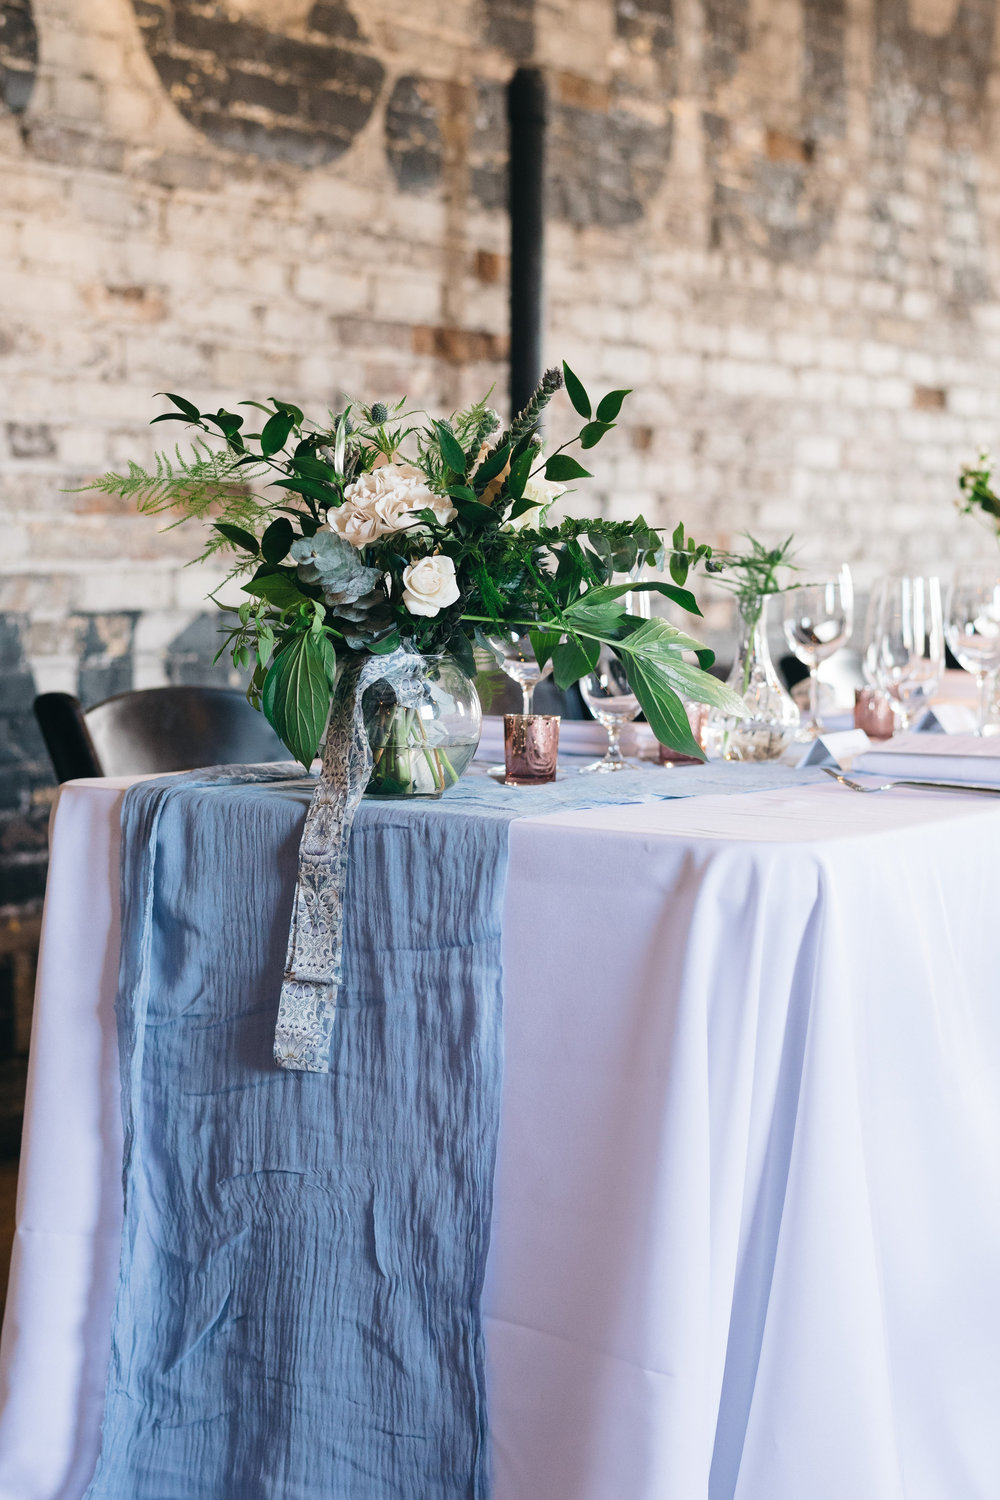 DECOR & DESIGN:  From a simple vision to a grand design, we are excited to be able to help with your event design and decor. With a flare for the creative and DIY, Burlap and Lace can help you finish putting the details of your pinterest board together, or help you start from the beginning. Come with some inspiration and we can take it from there!